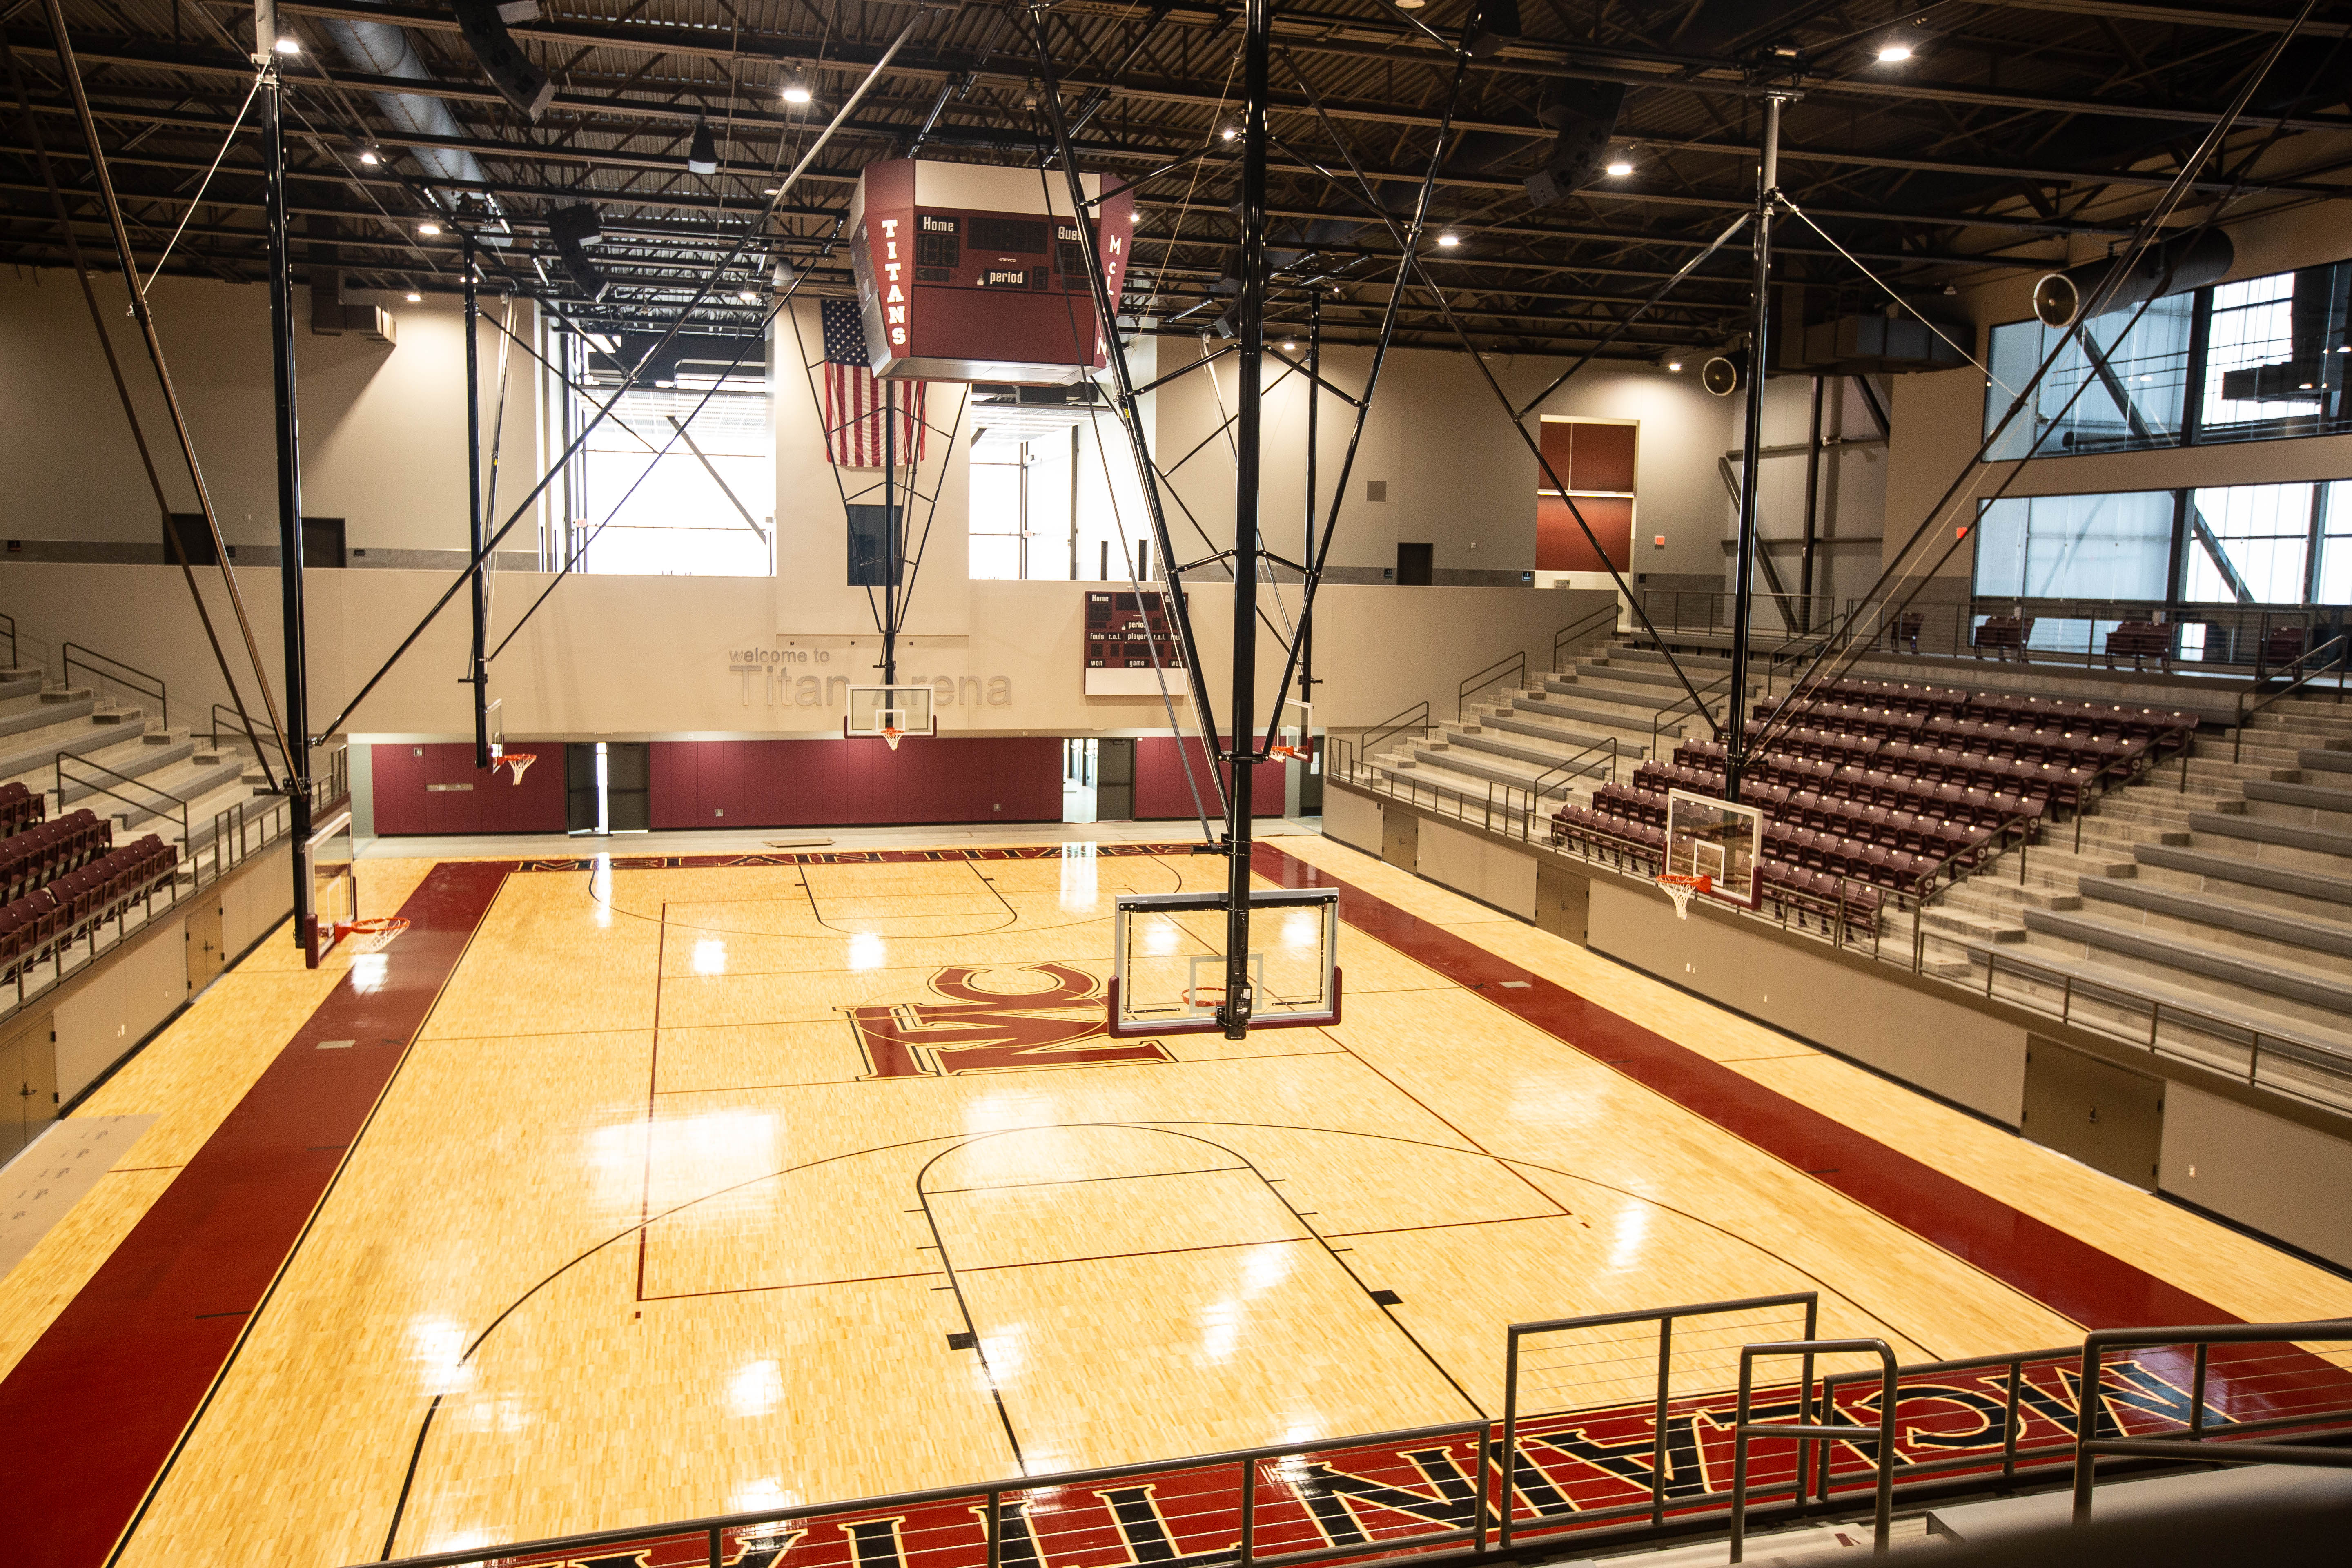 Home court, upper level